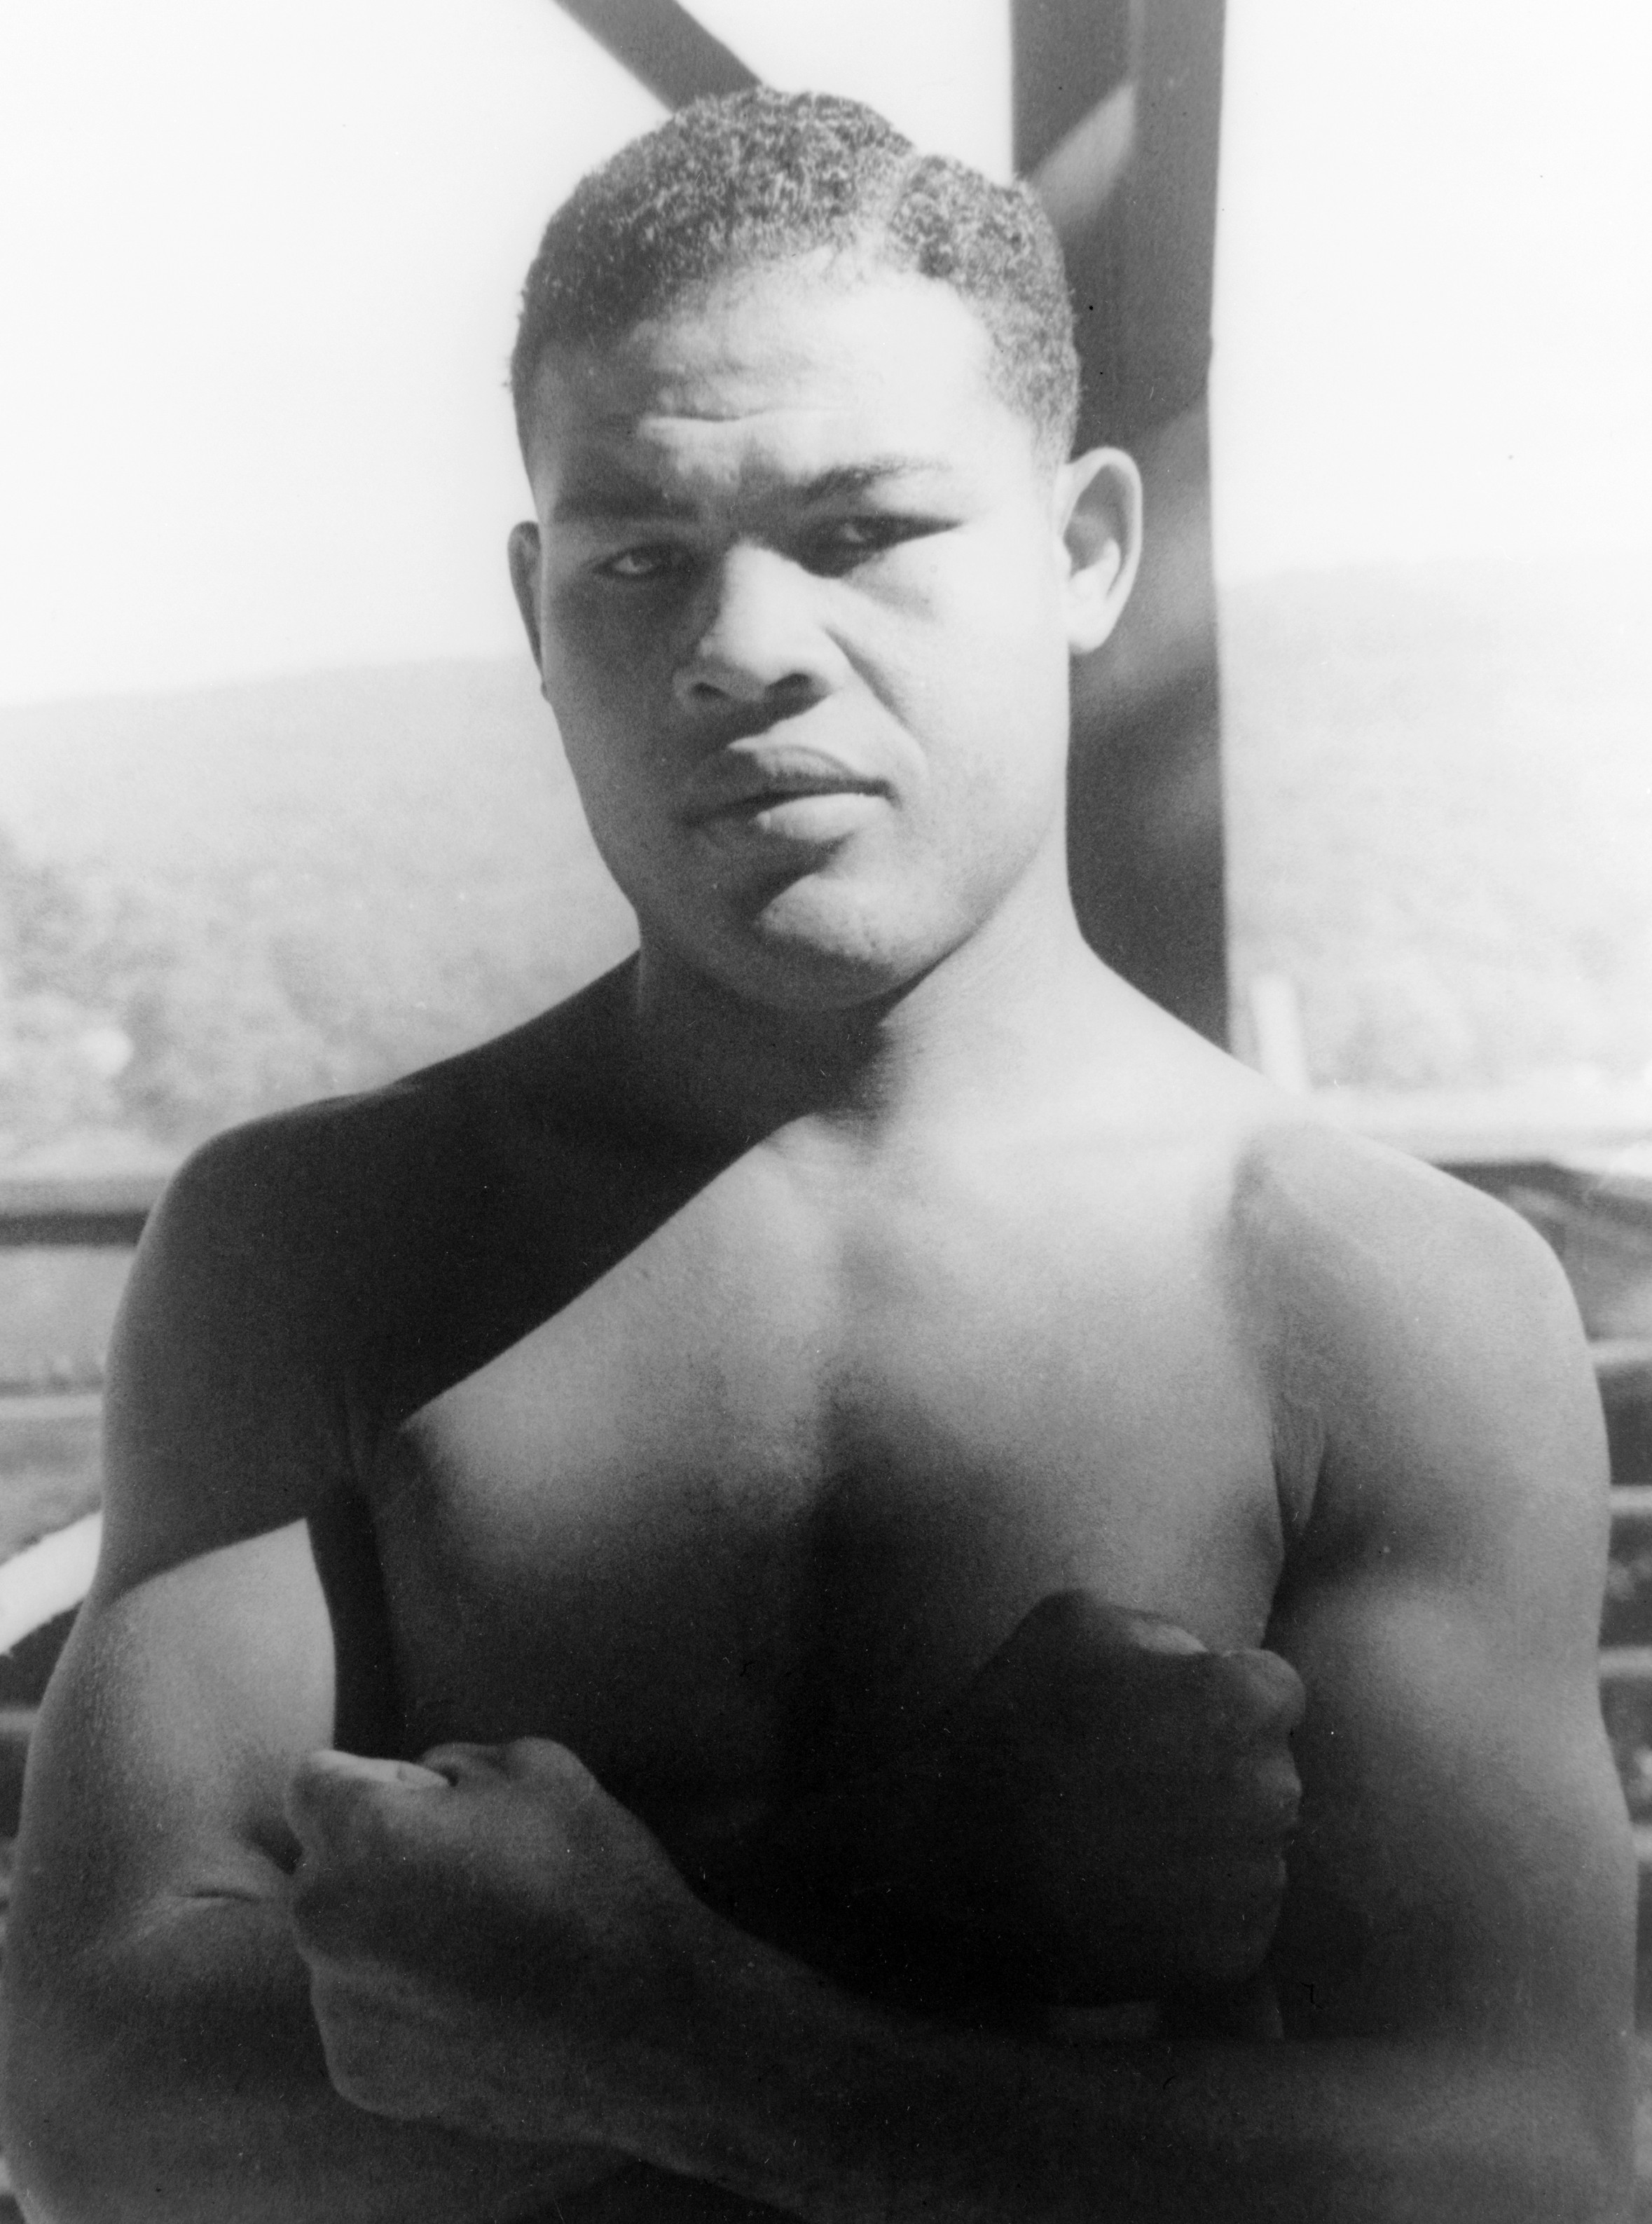 Portrait of boxer Joe Louis